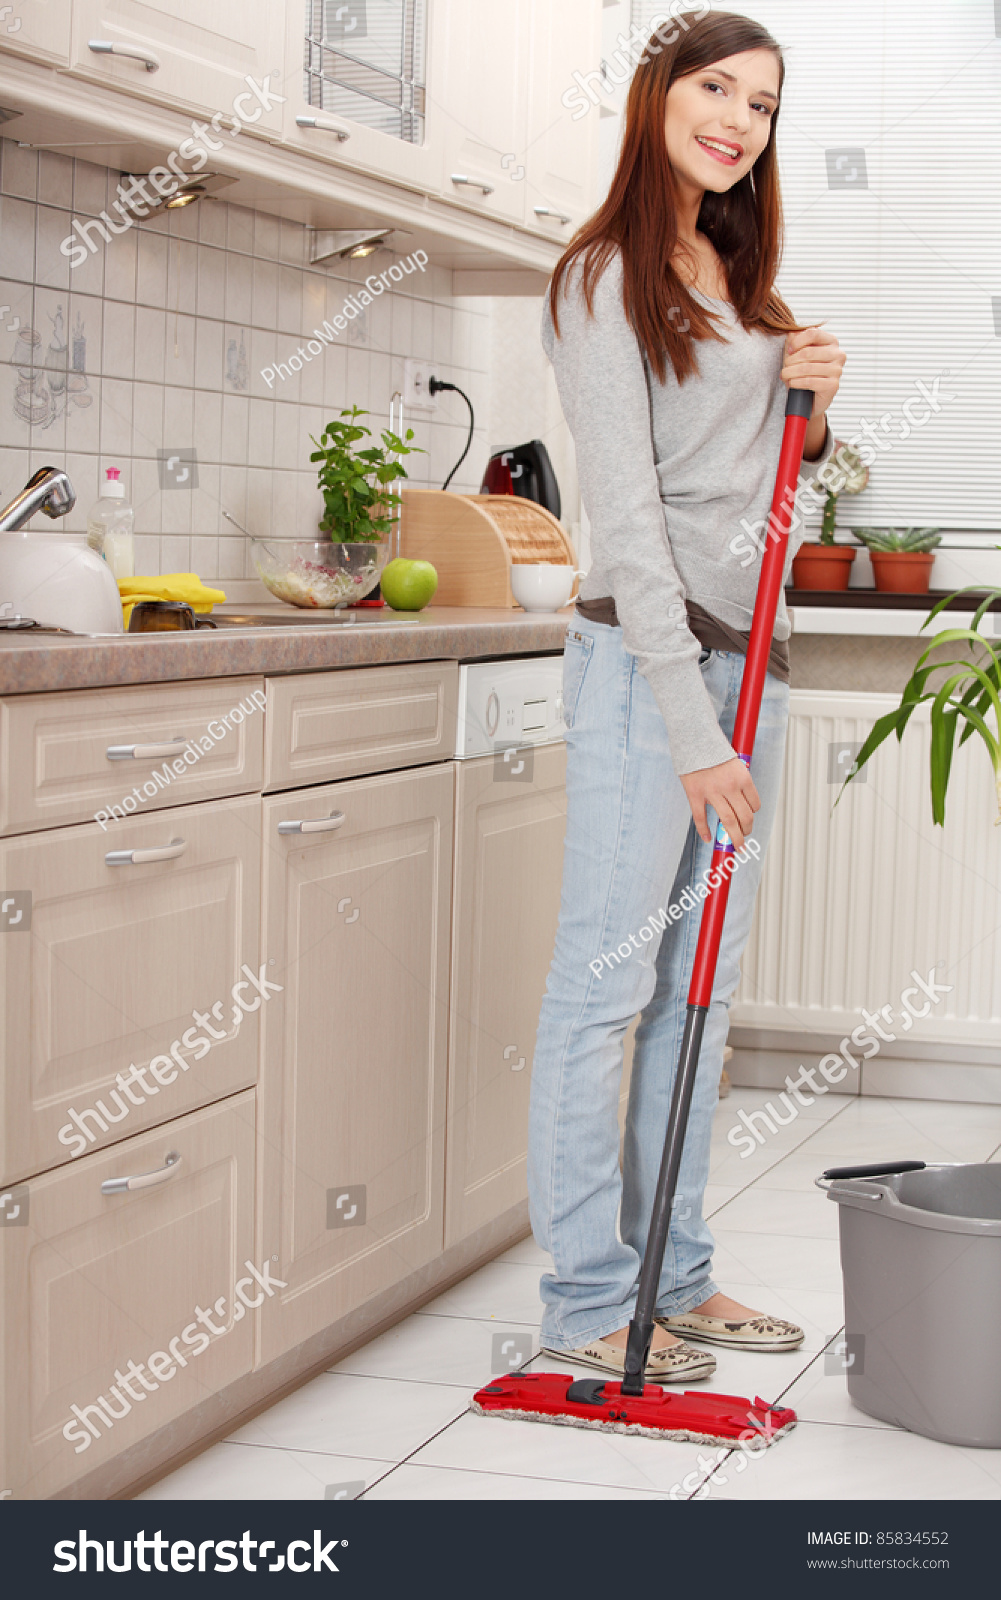 Kitchen Floor Cleaners Woman Holding Mop Cleaning Kitchen Floor Stock Photo 85834552